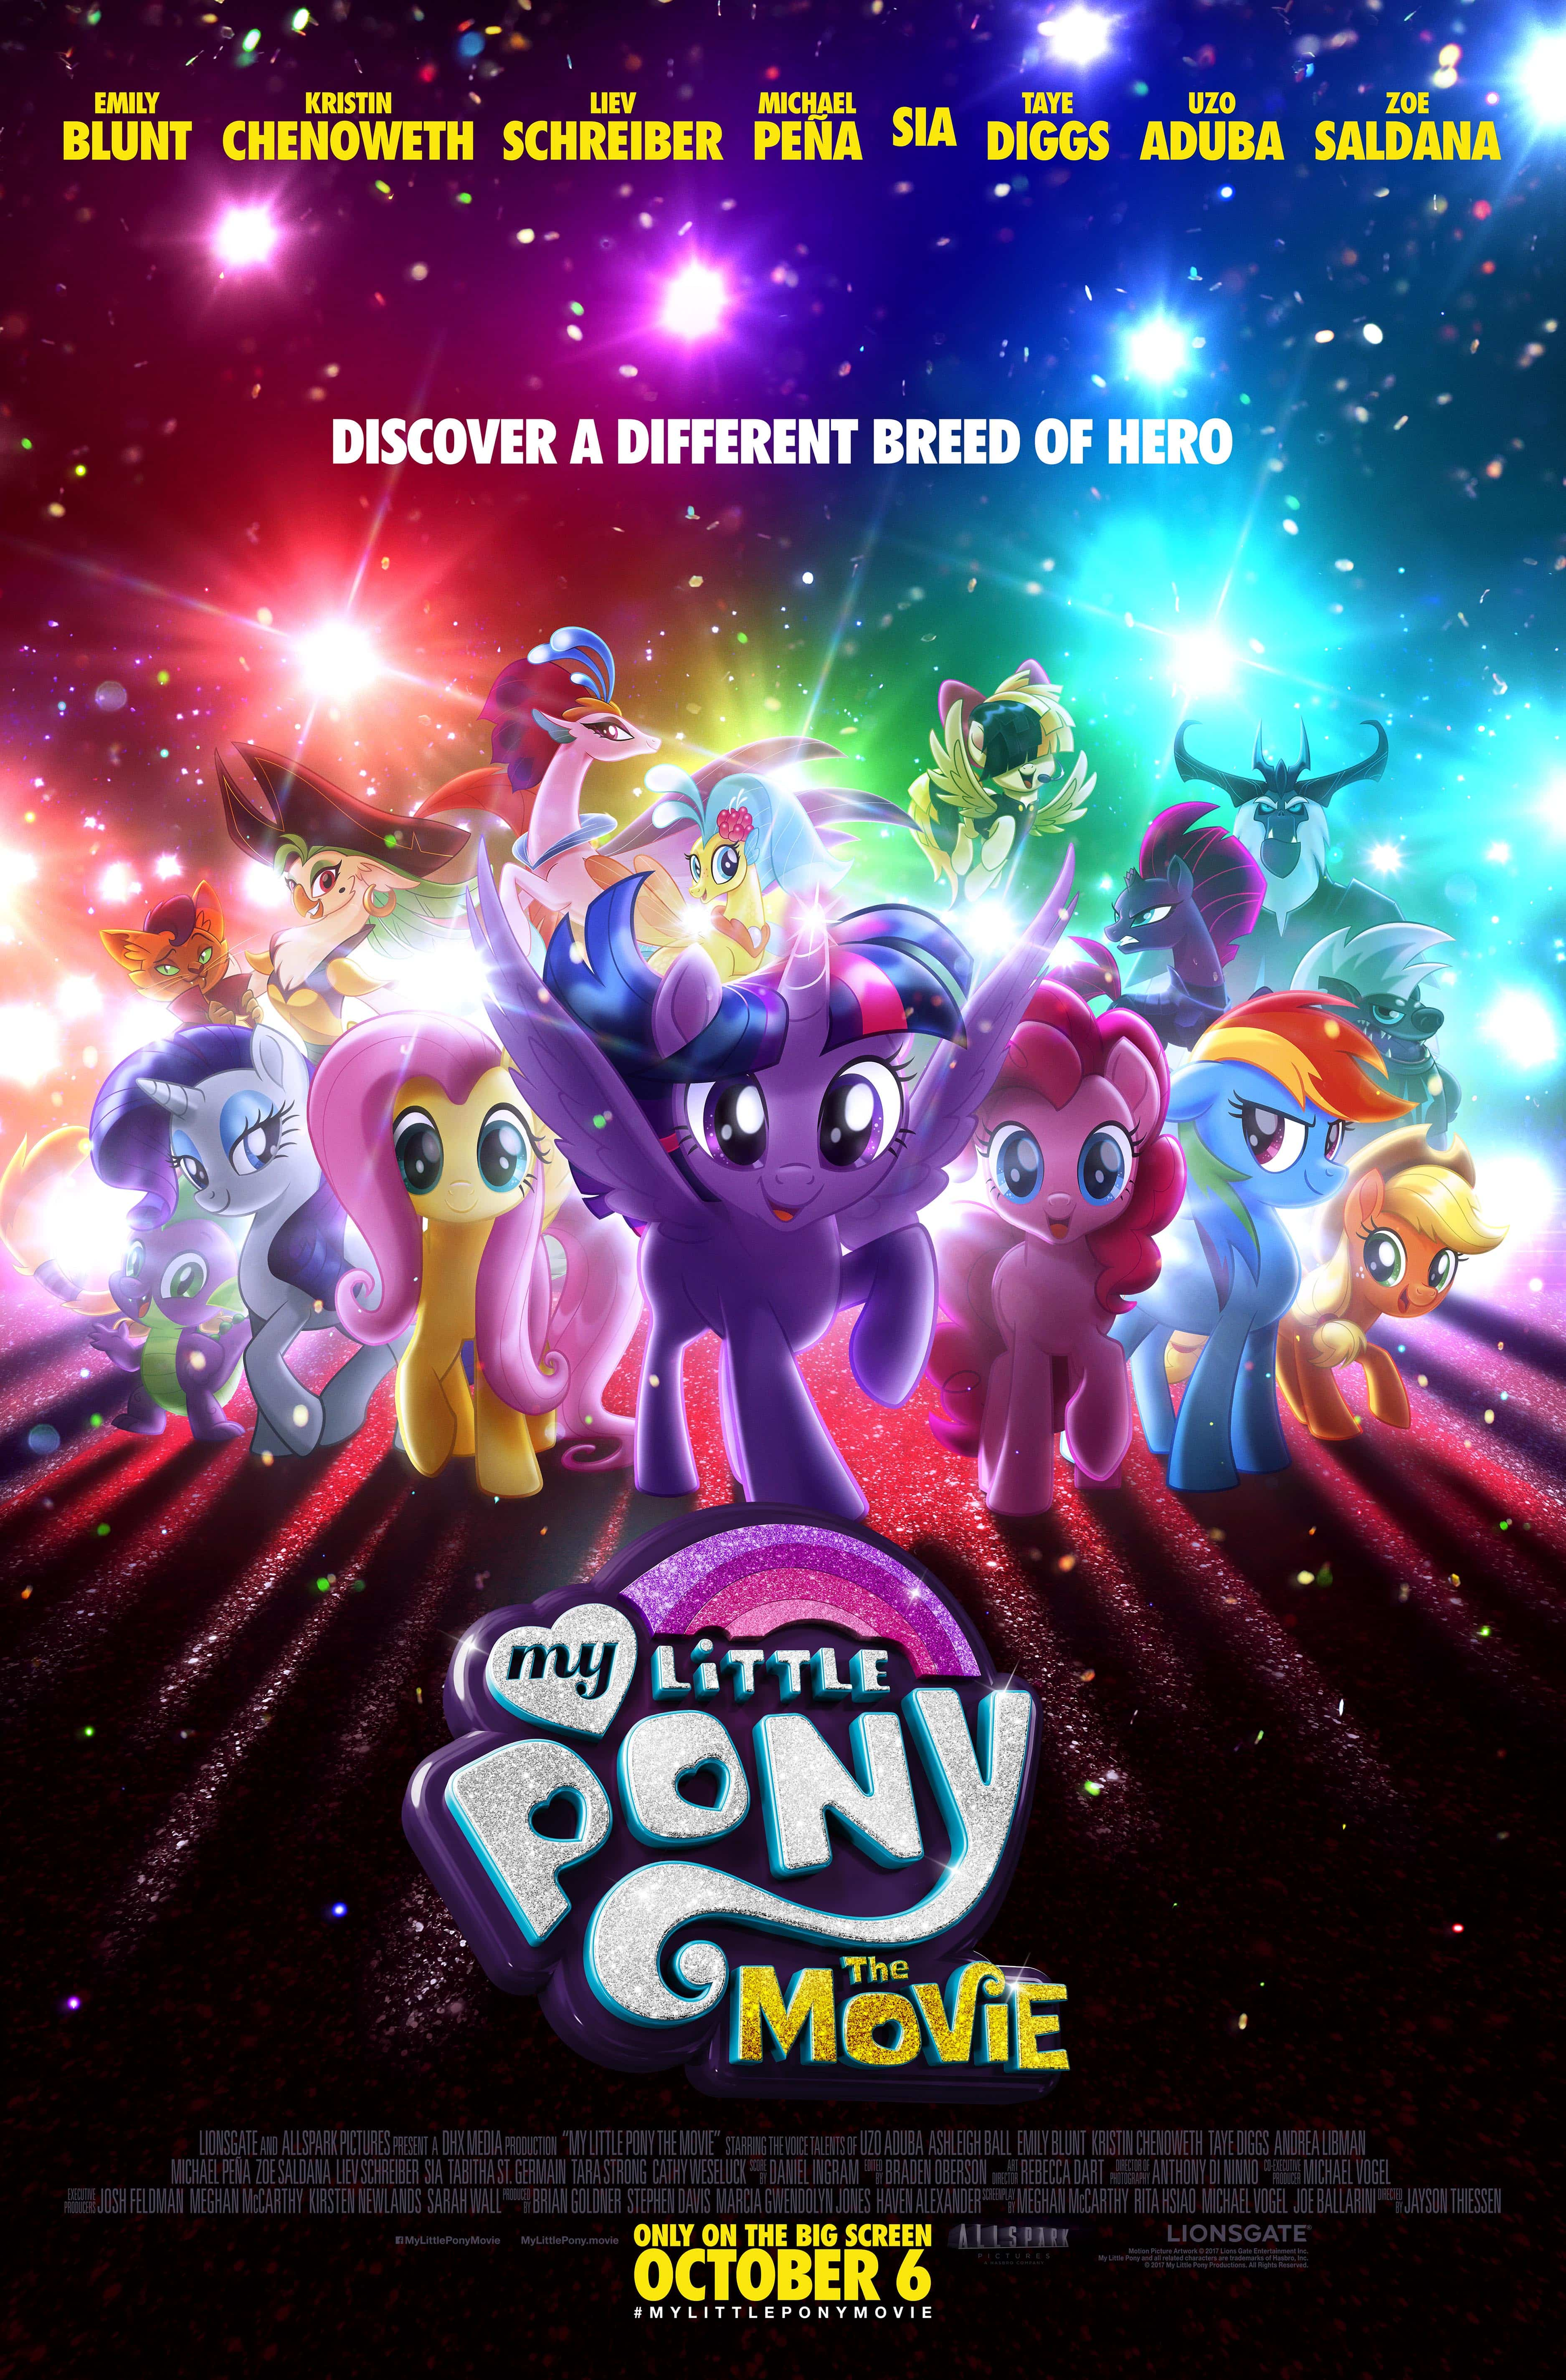 My Little Pony Movie